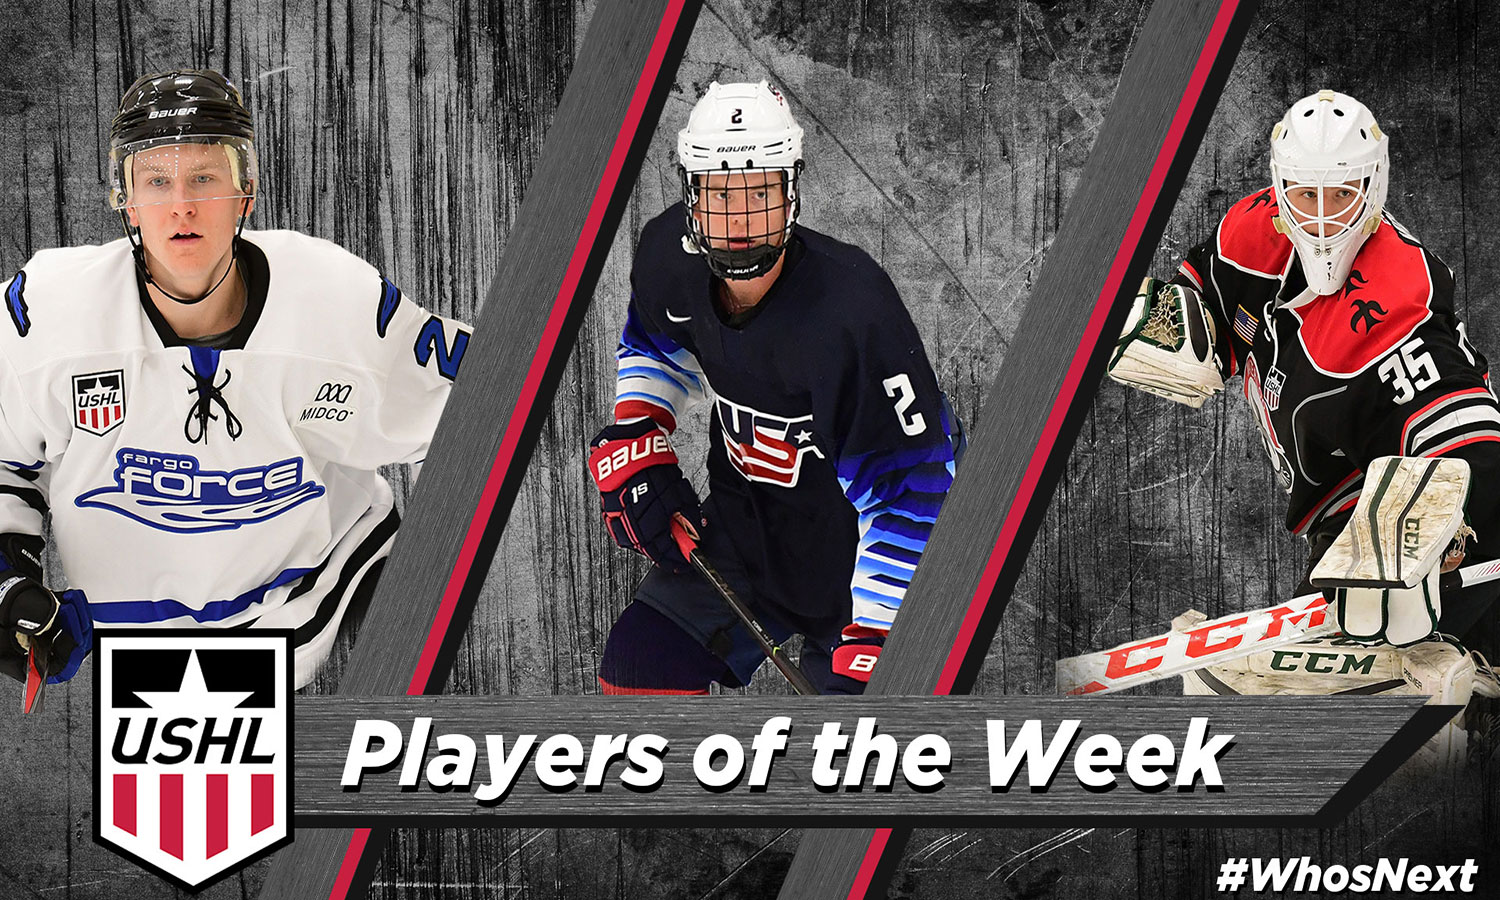 USHL: Players Of The Week - Week 17